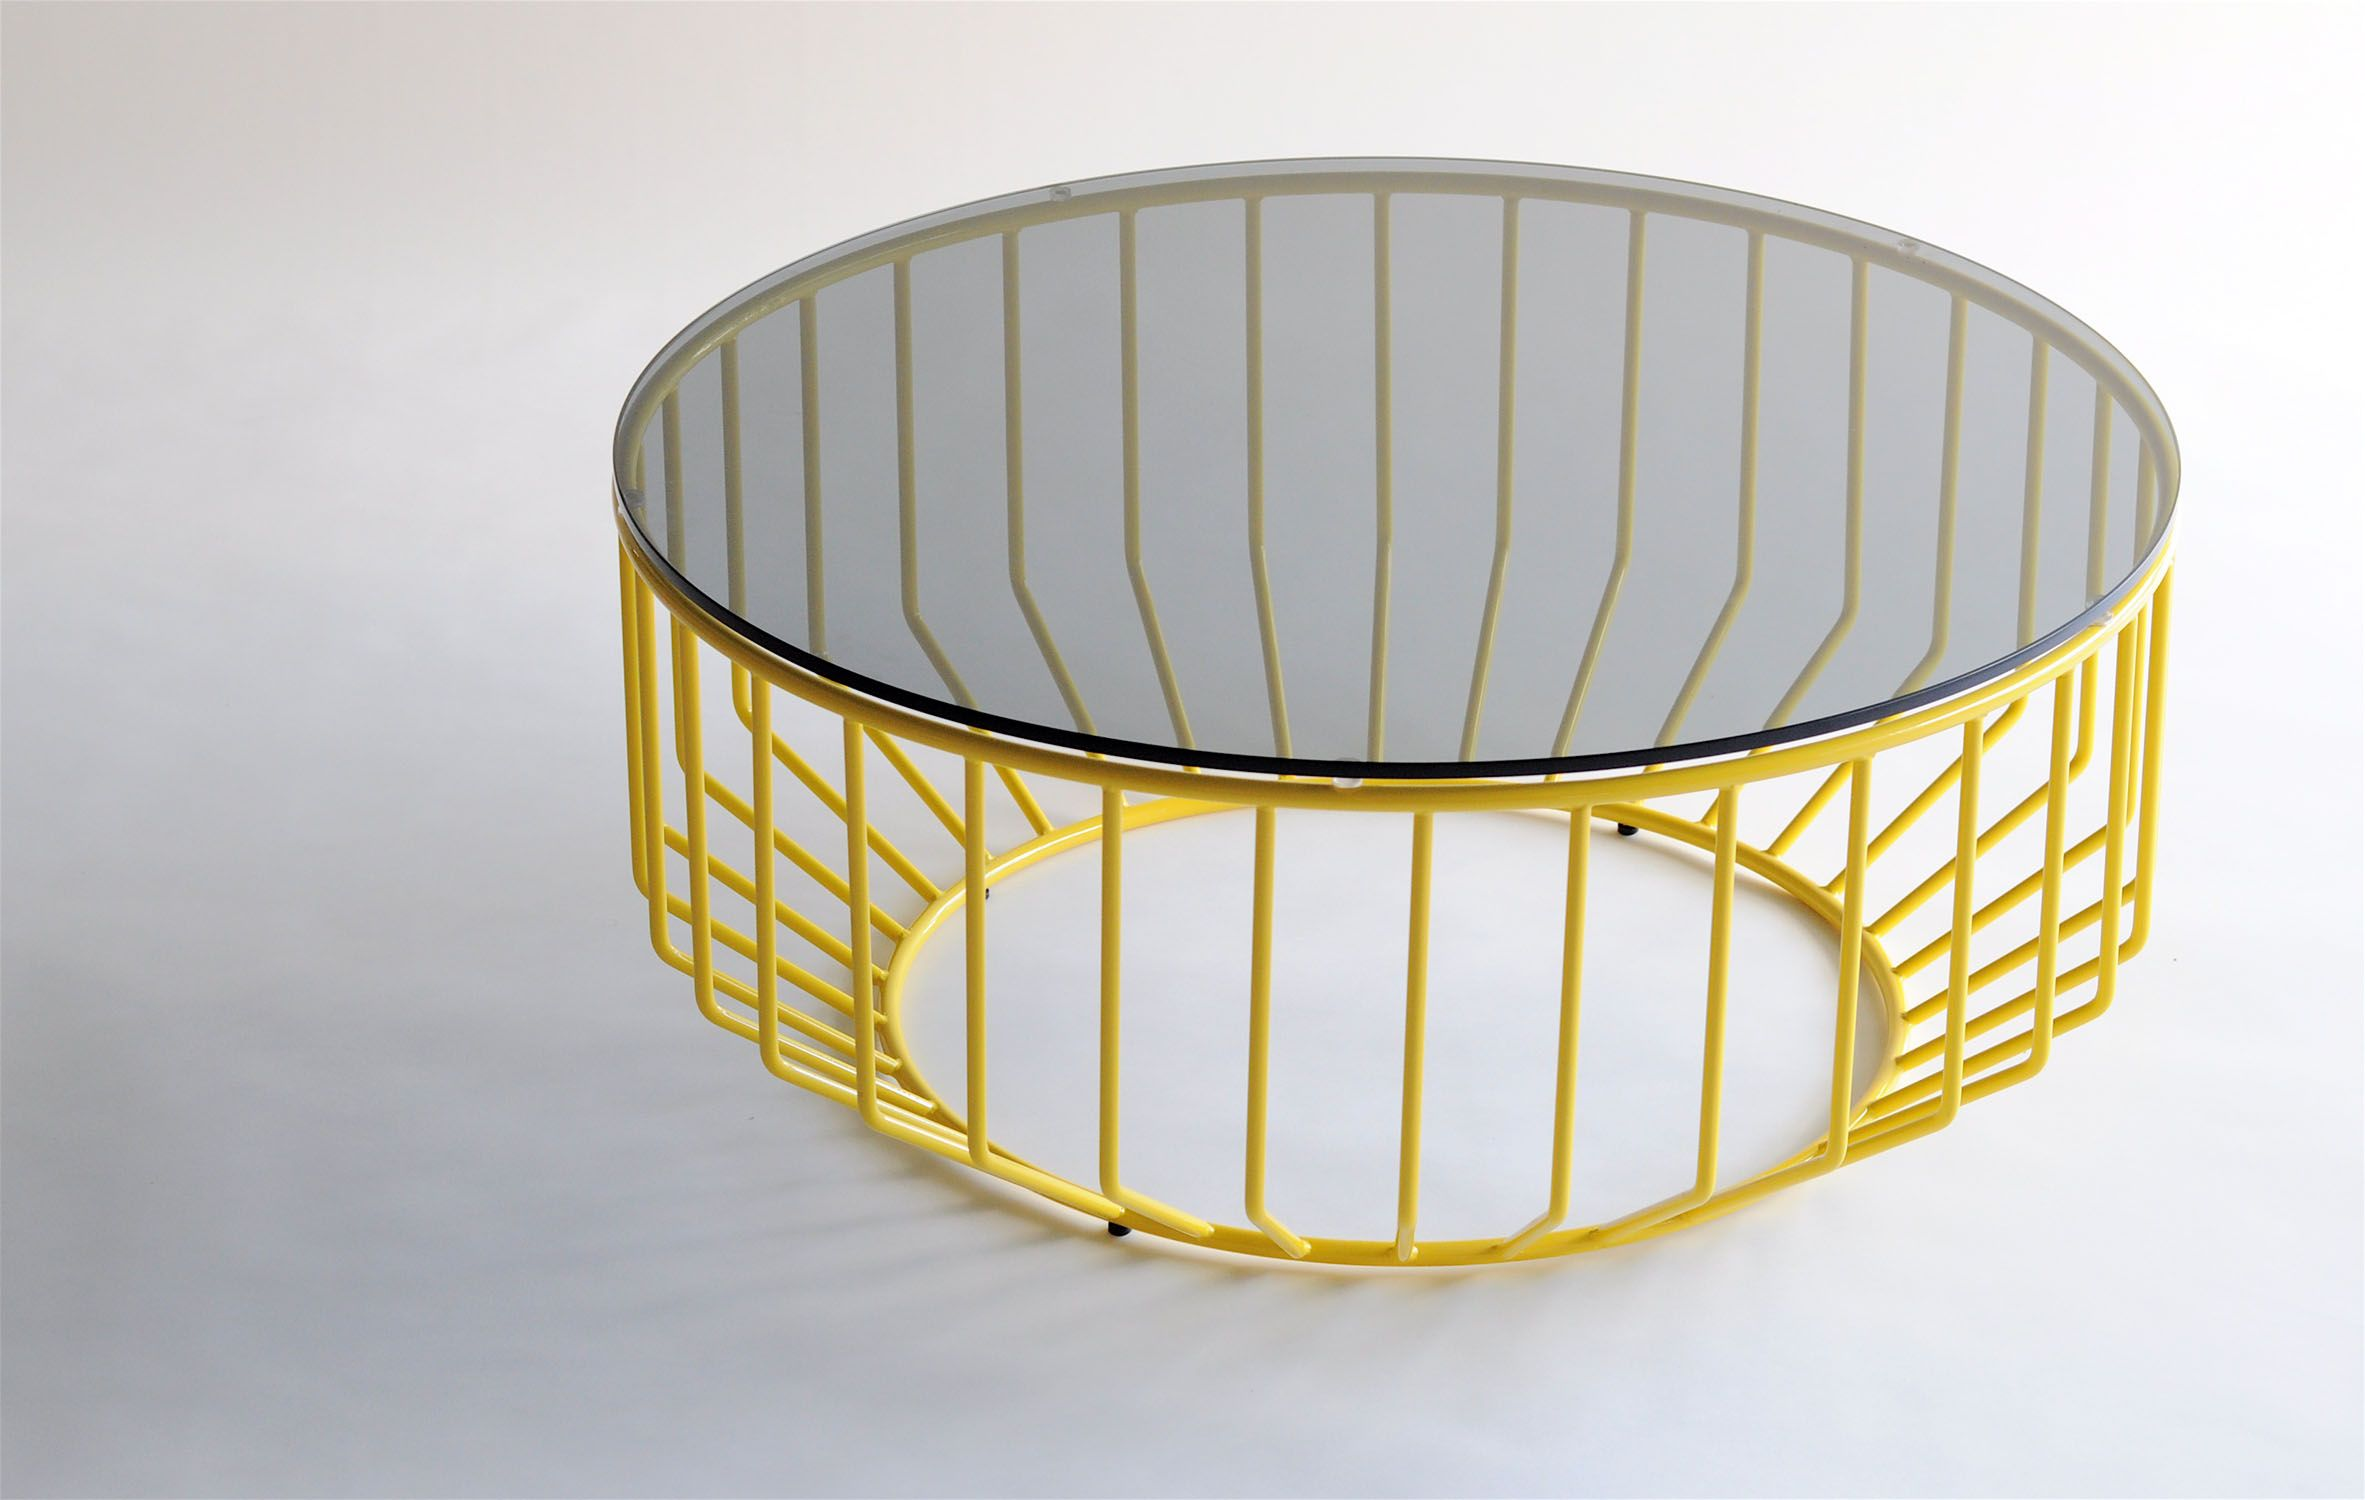 wired 32 coffee table w glass top by reza feiz for phase design